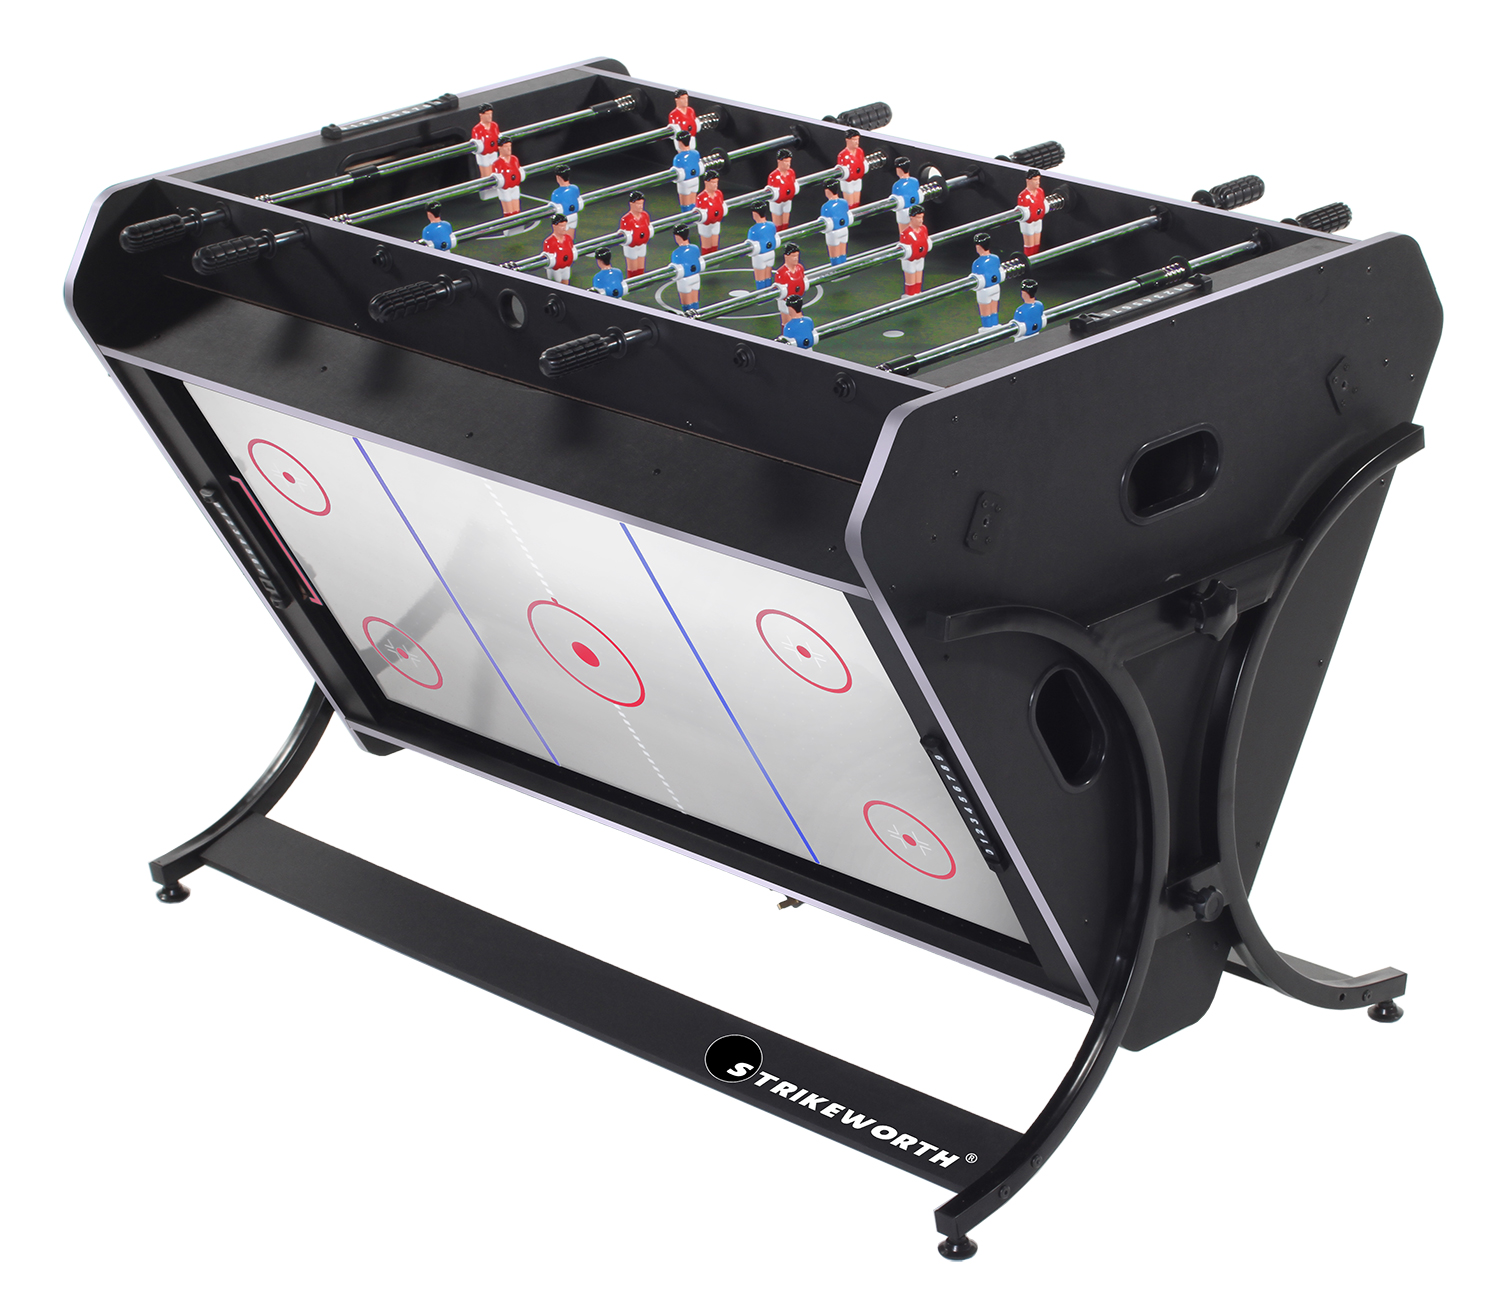 898ee2acb2c7f Strikeworth TriSport 4 foot Multi Games Table